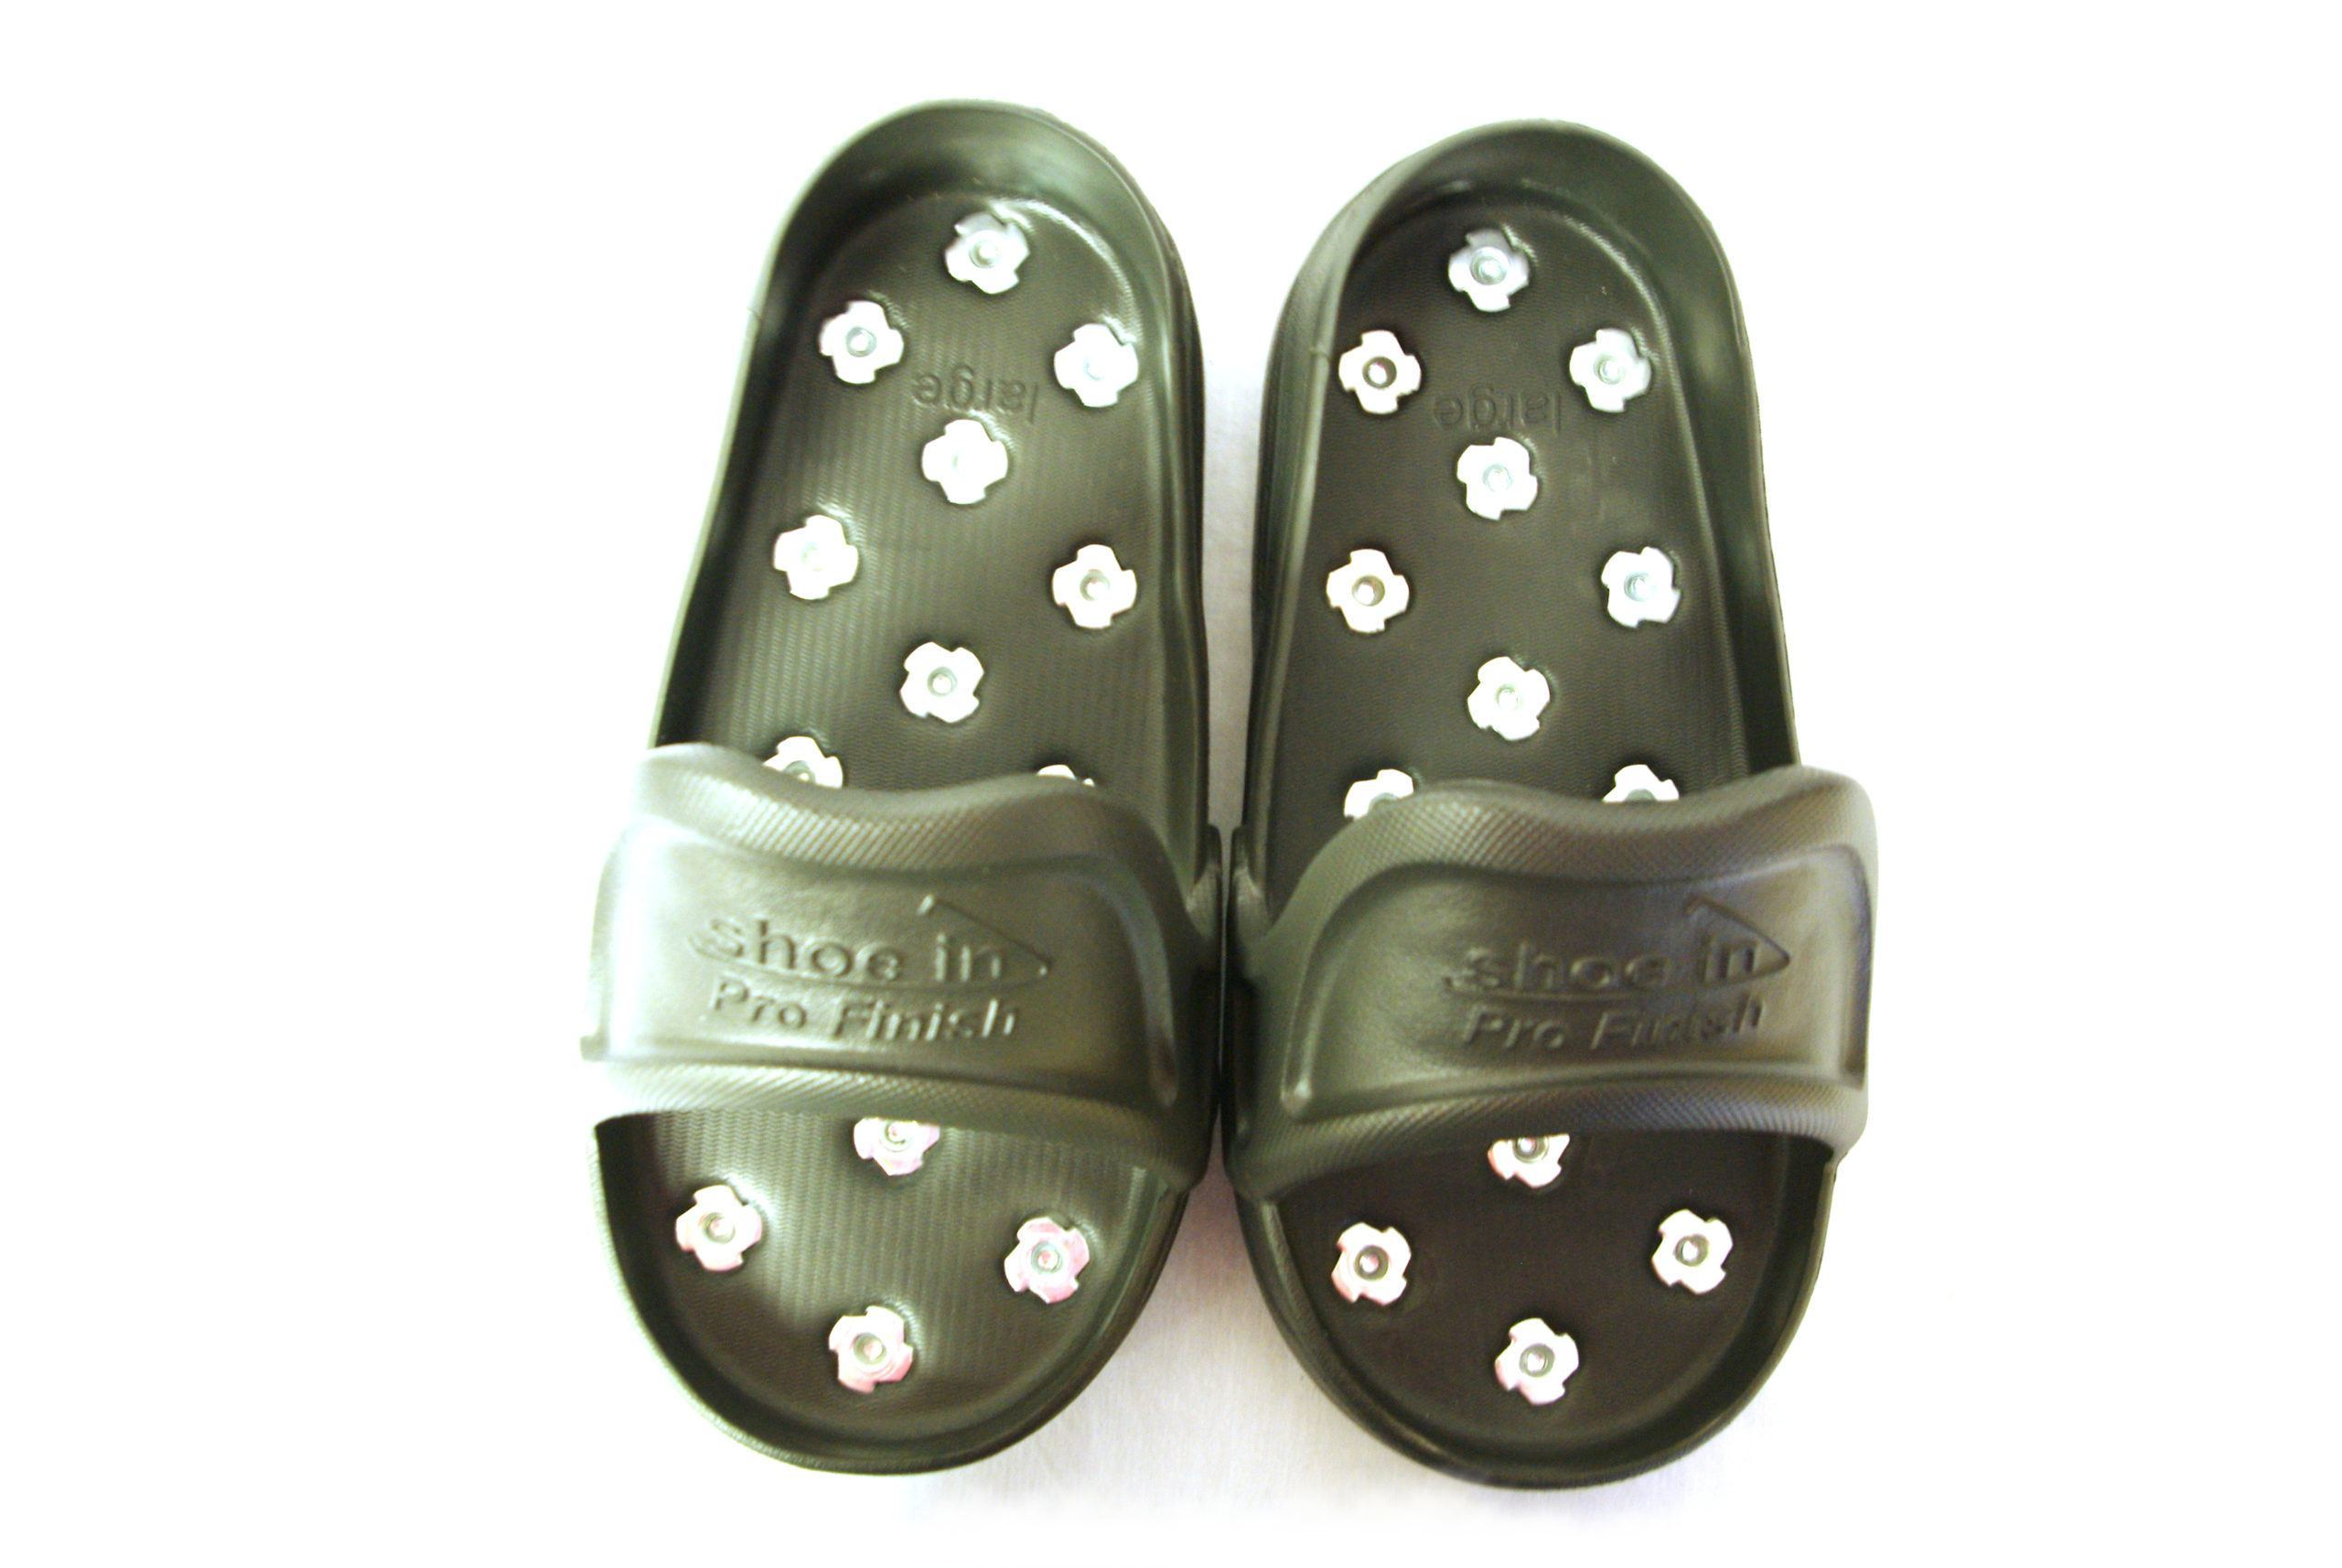 Resinous Epoxy Coatings Large Shoe-In Spiked Shoes for Gunite